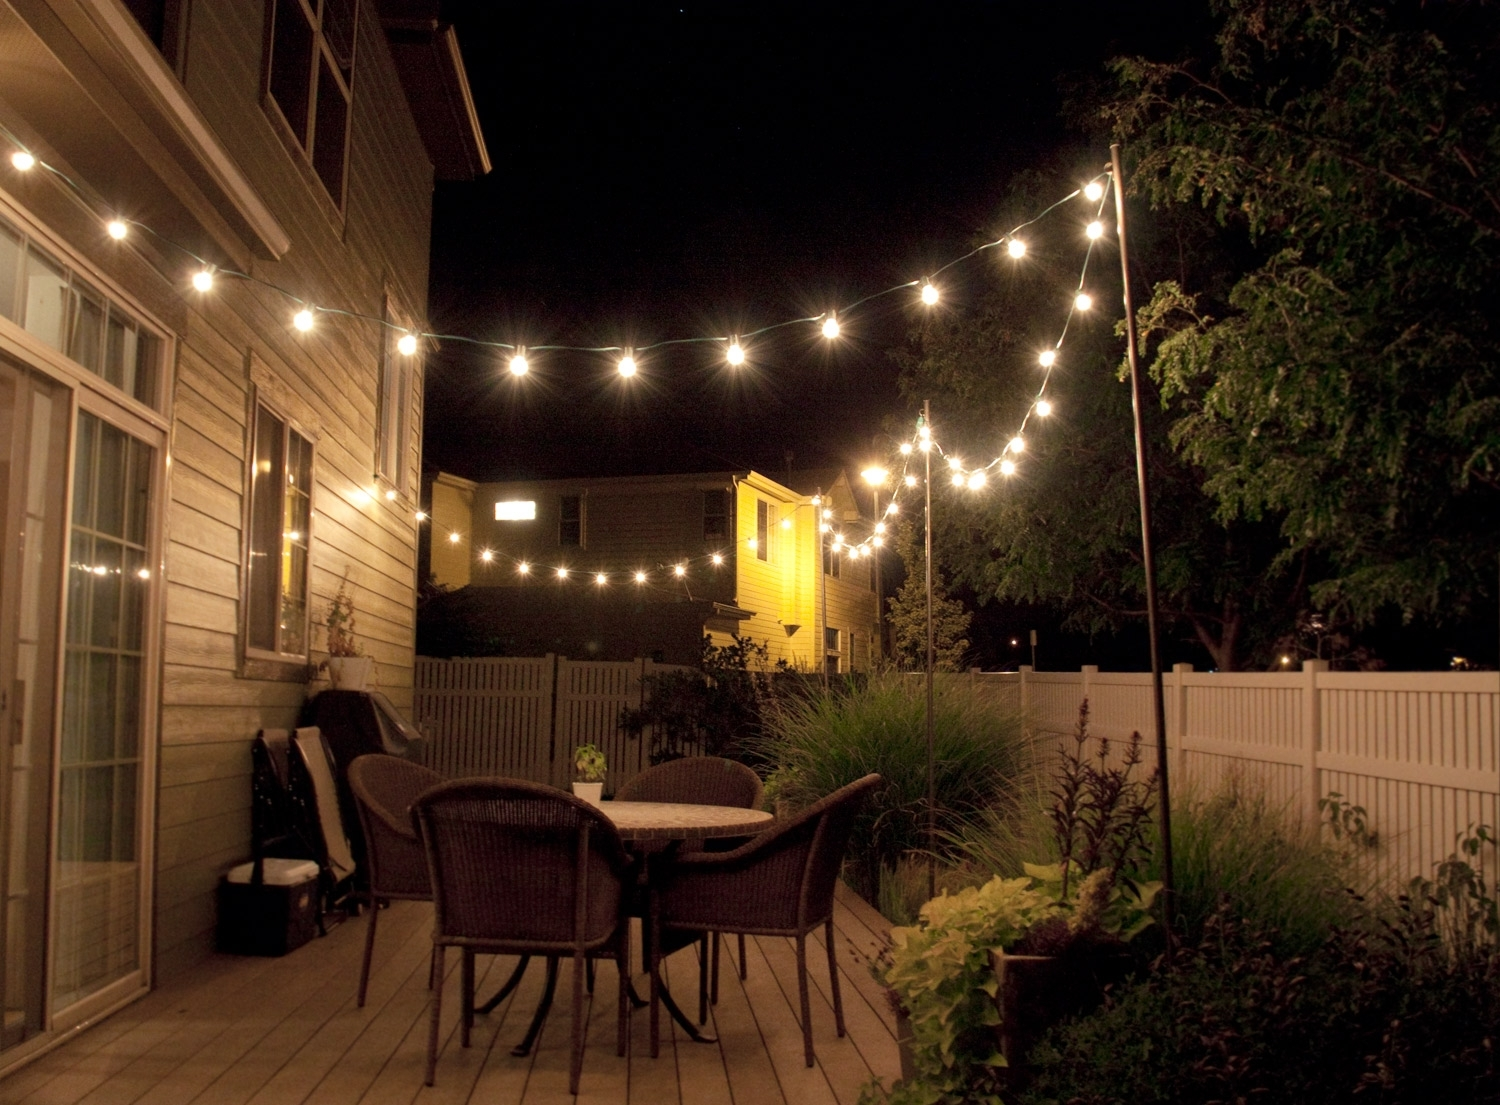 Battery Operated Lights For Outdoor Wedding - Outdoor Lighting Ideas within Outdoor Battery Lanterns For Patio (Image 4 of 20)